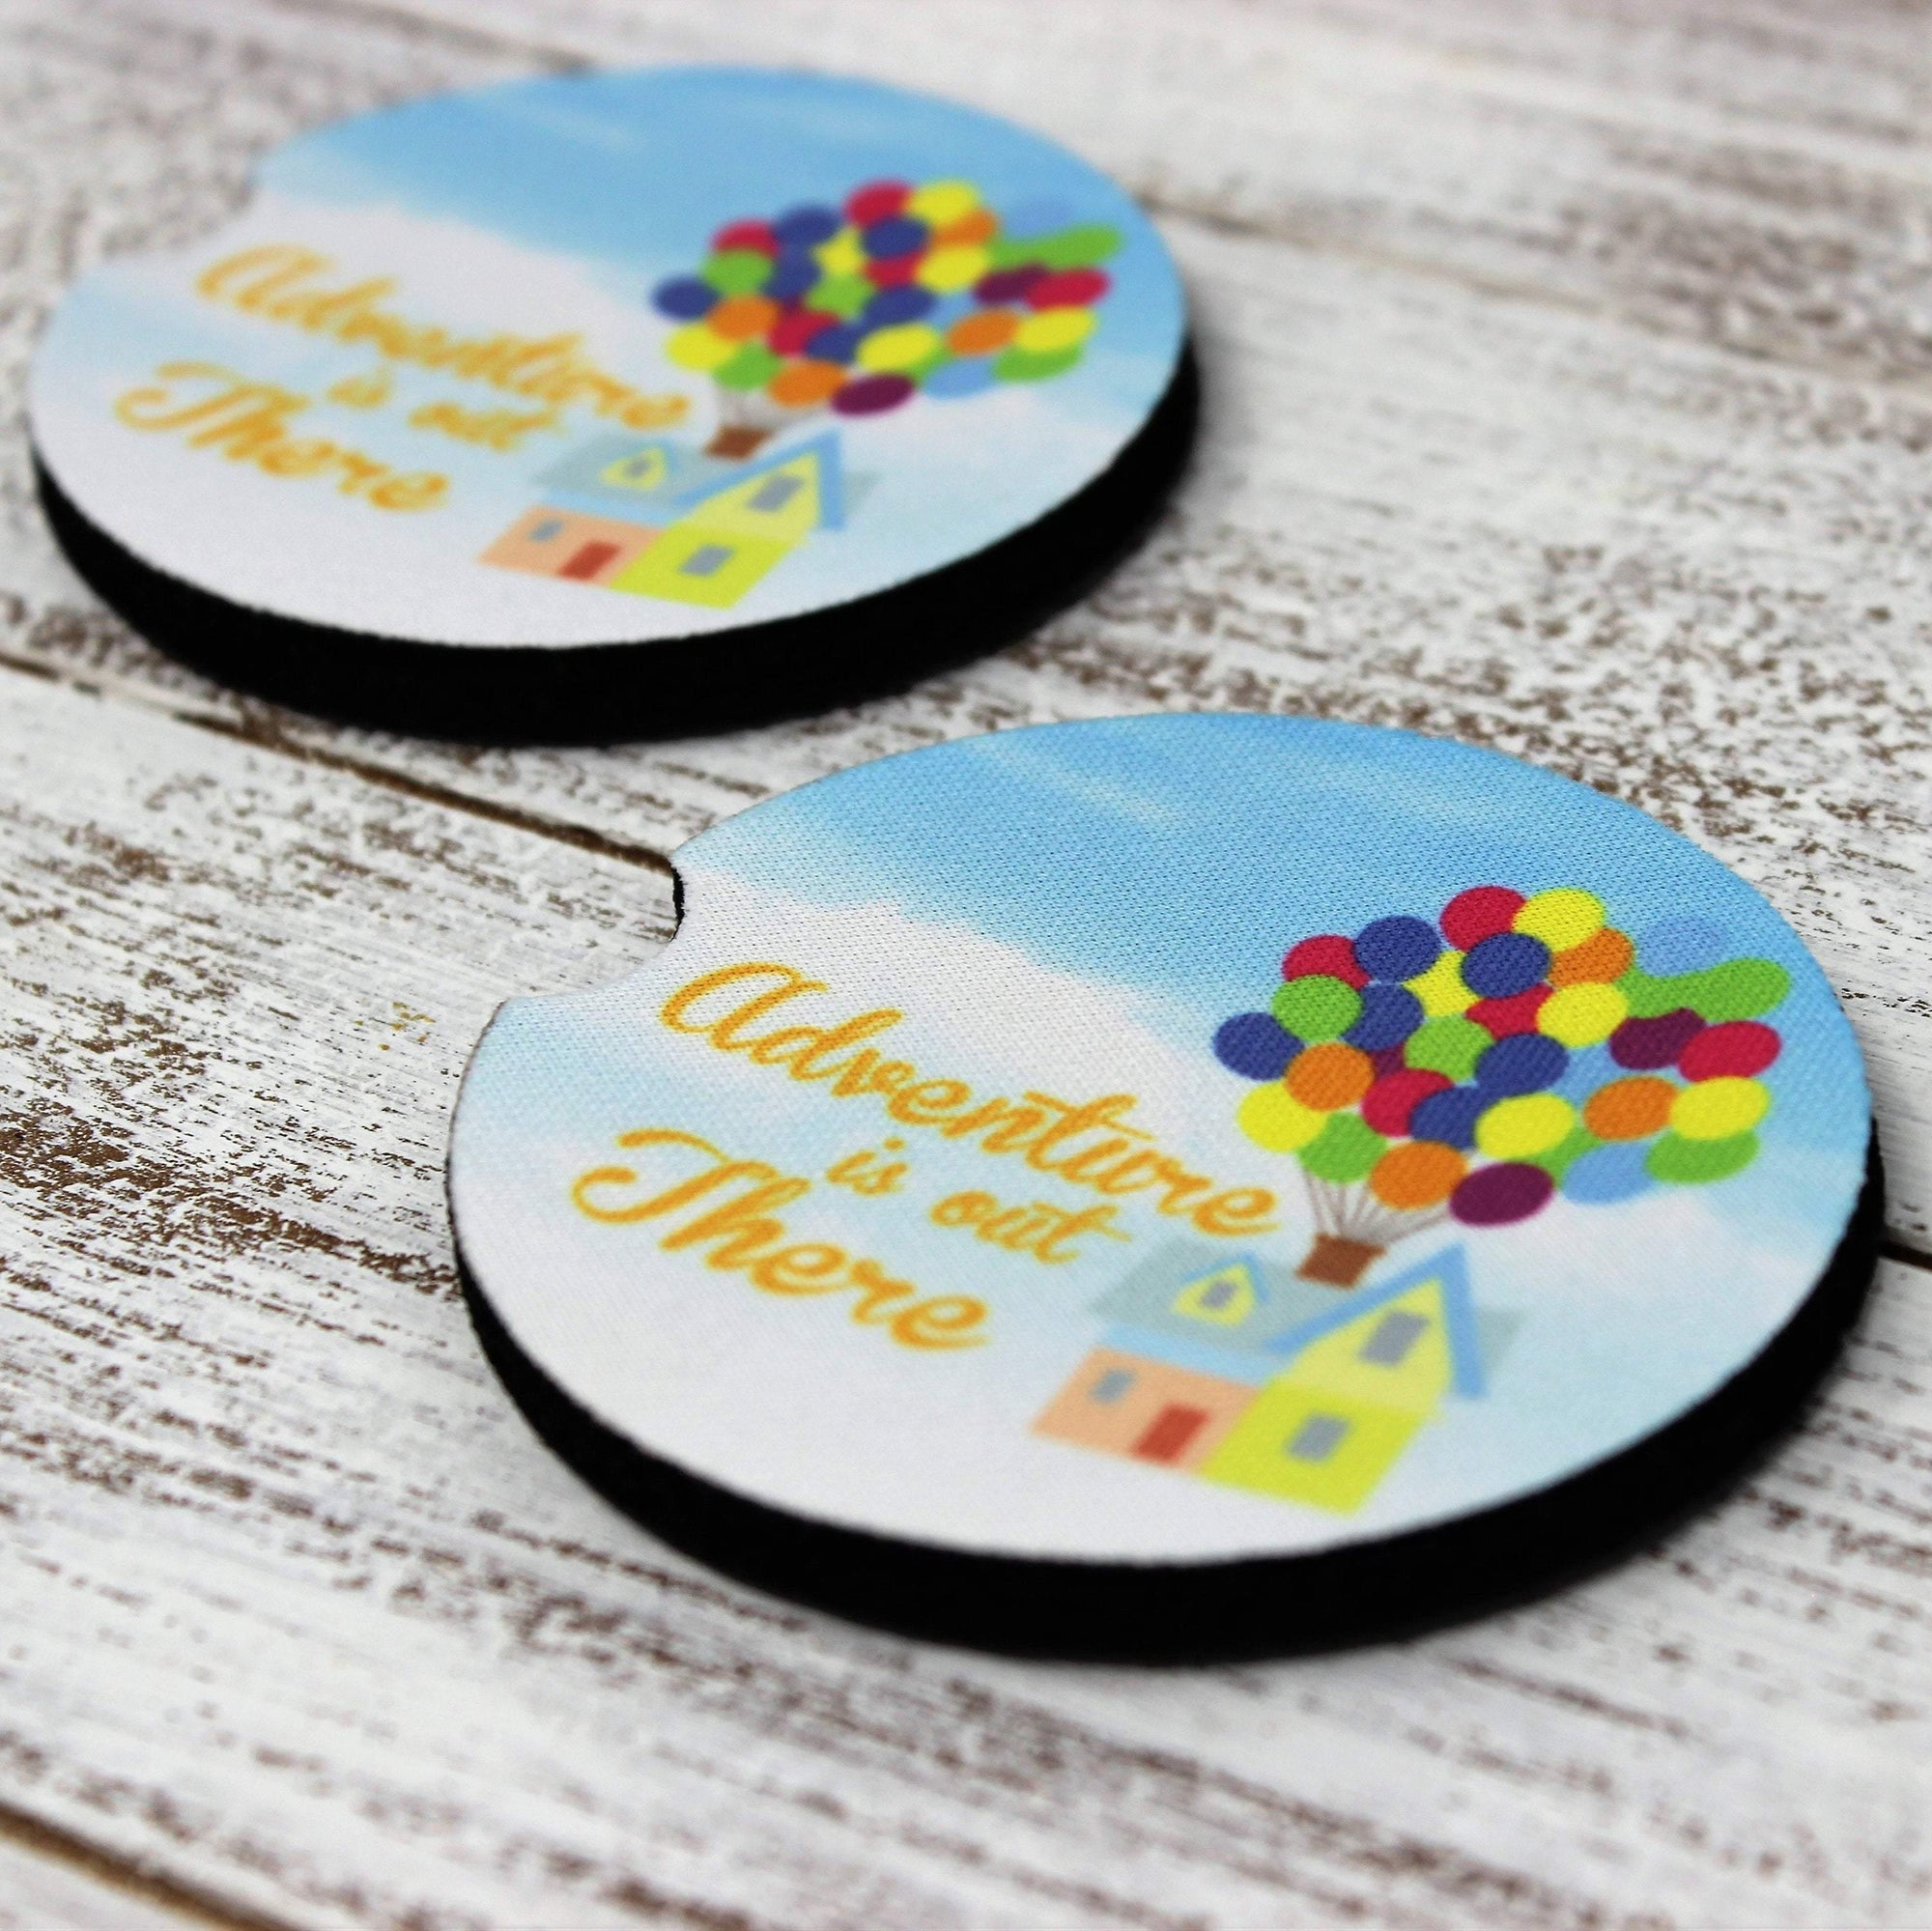 Car Accessories | Personalized Car Coasters | Custom Car Accessories | Adventure | Set of 2 | This and That Solutions | Personalized Gifts | Custom Home Décor